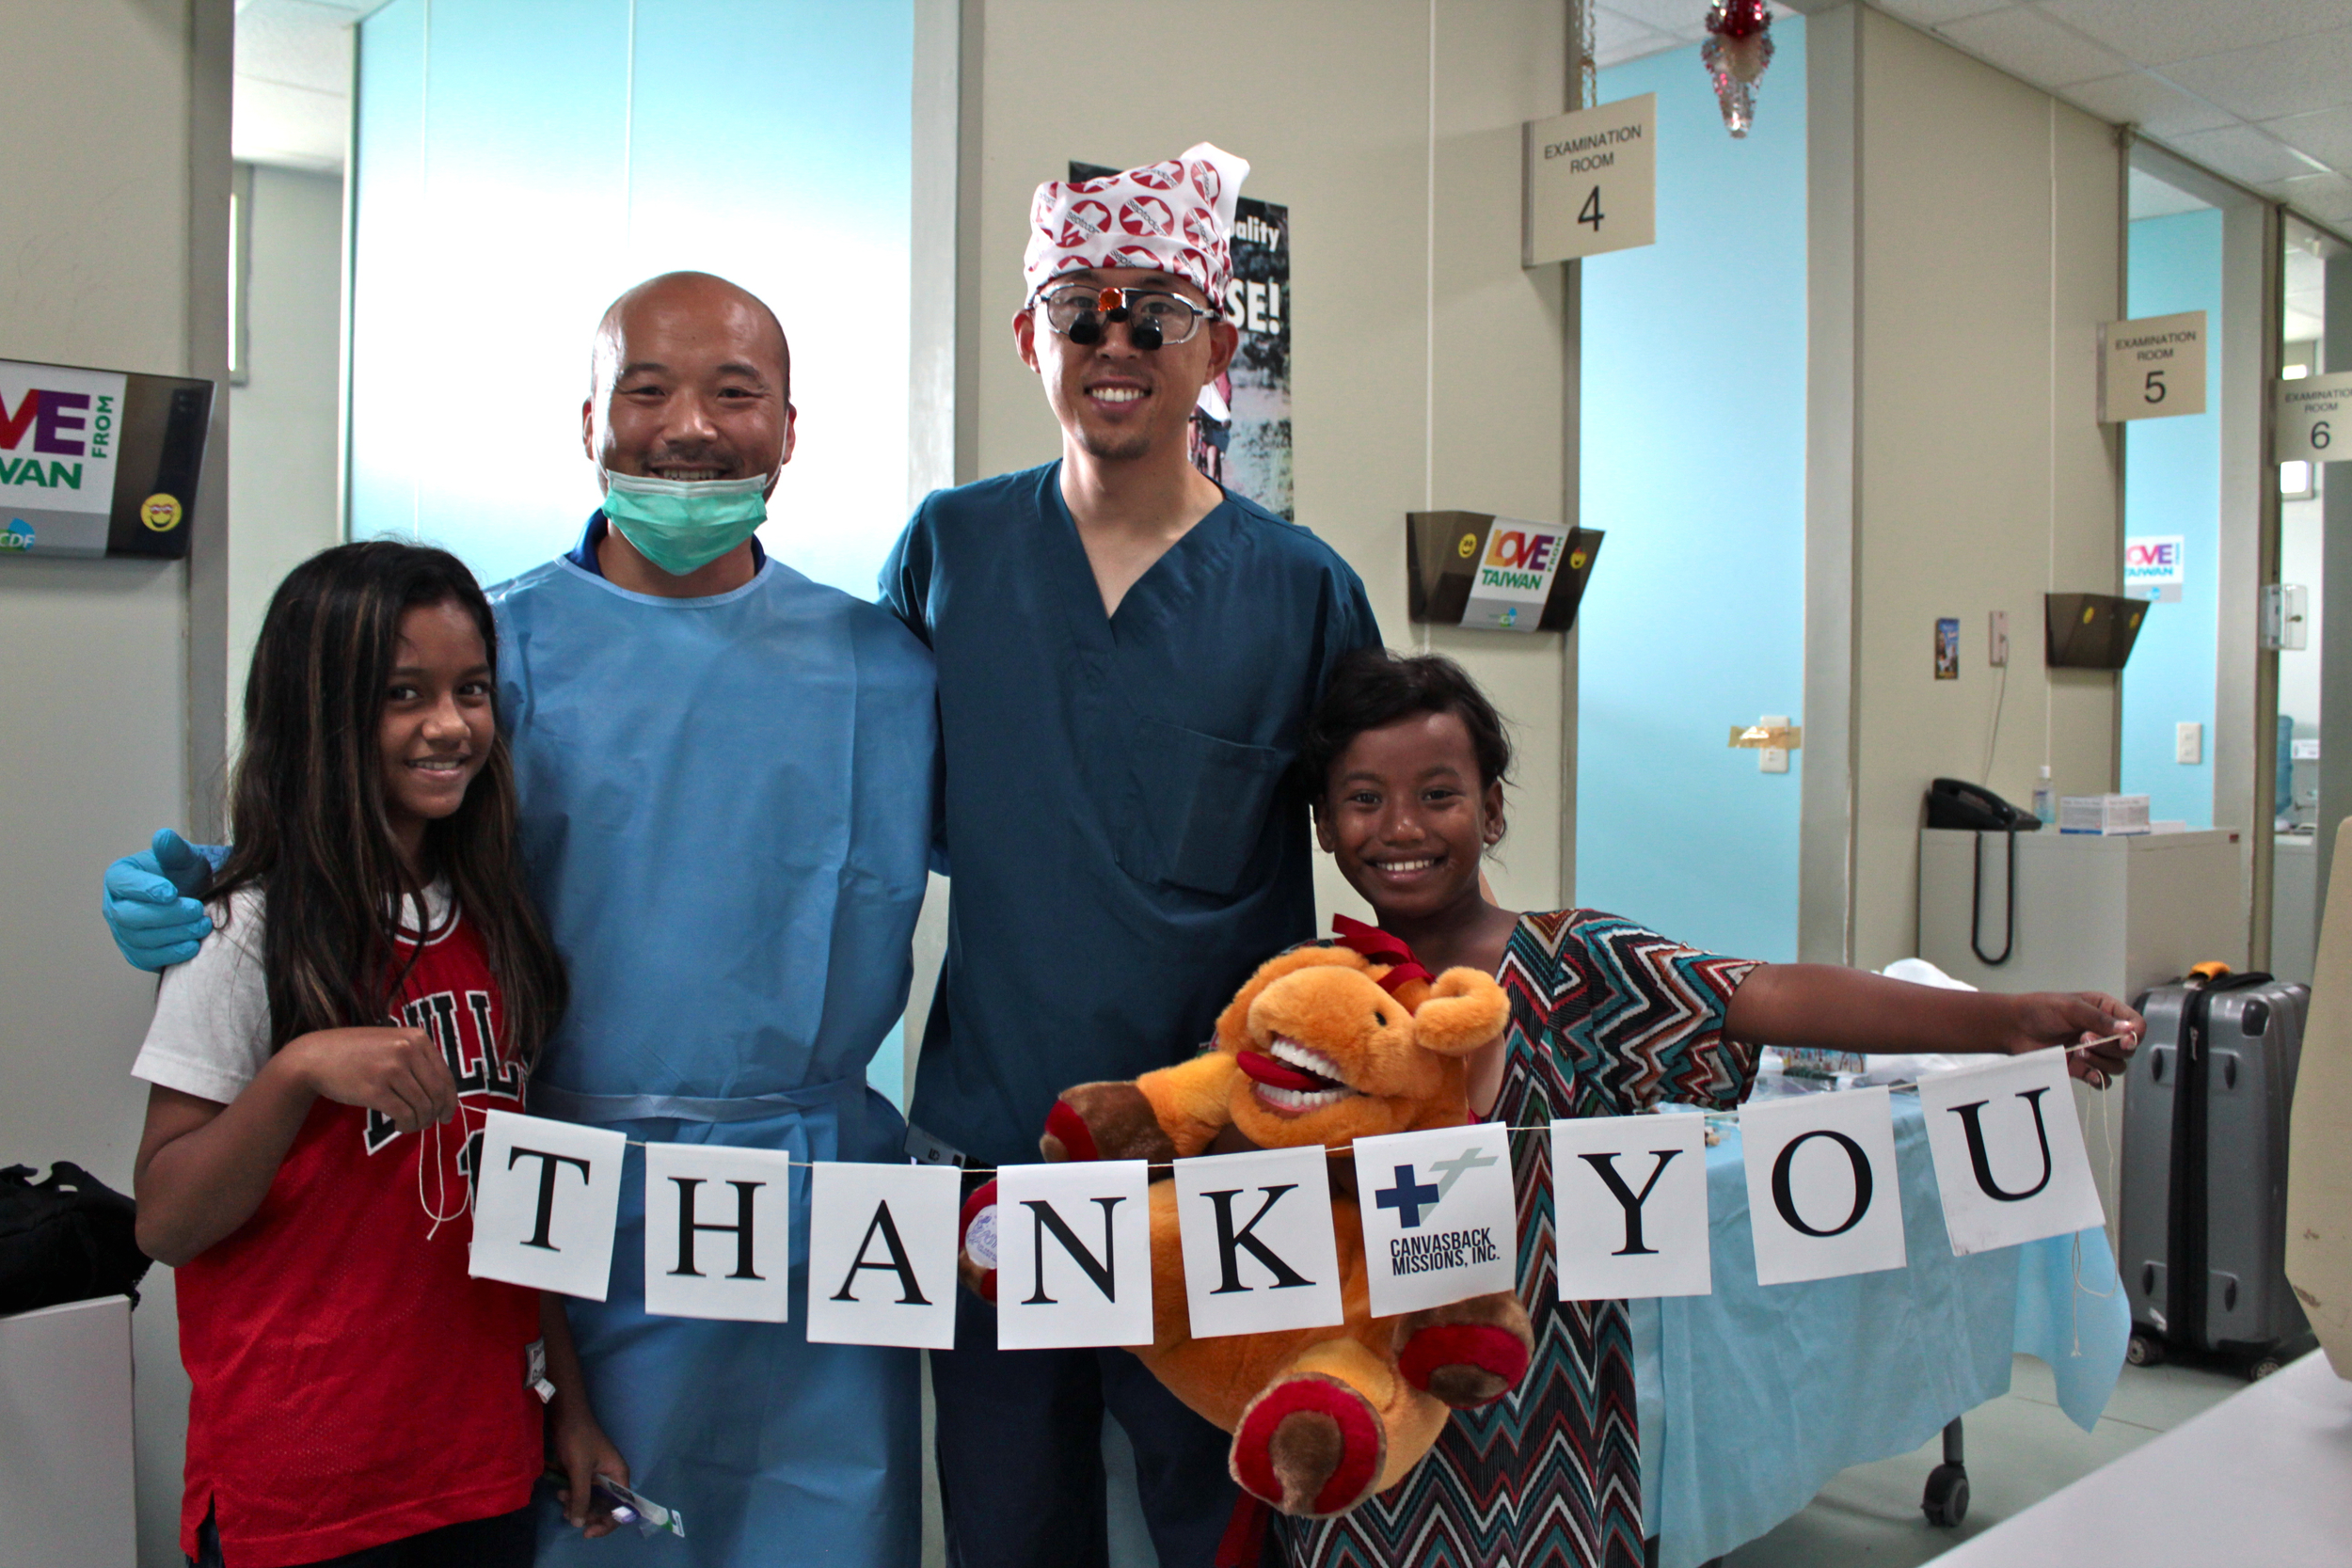 Two Canvasback dentists with two of their patients—all four of them thank Septodont for their generous donations.